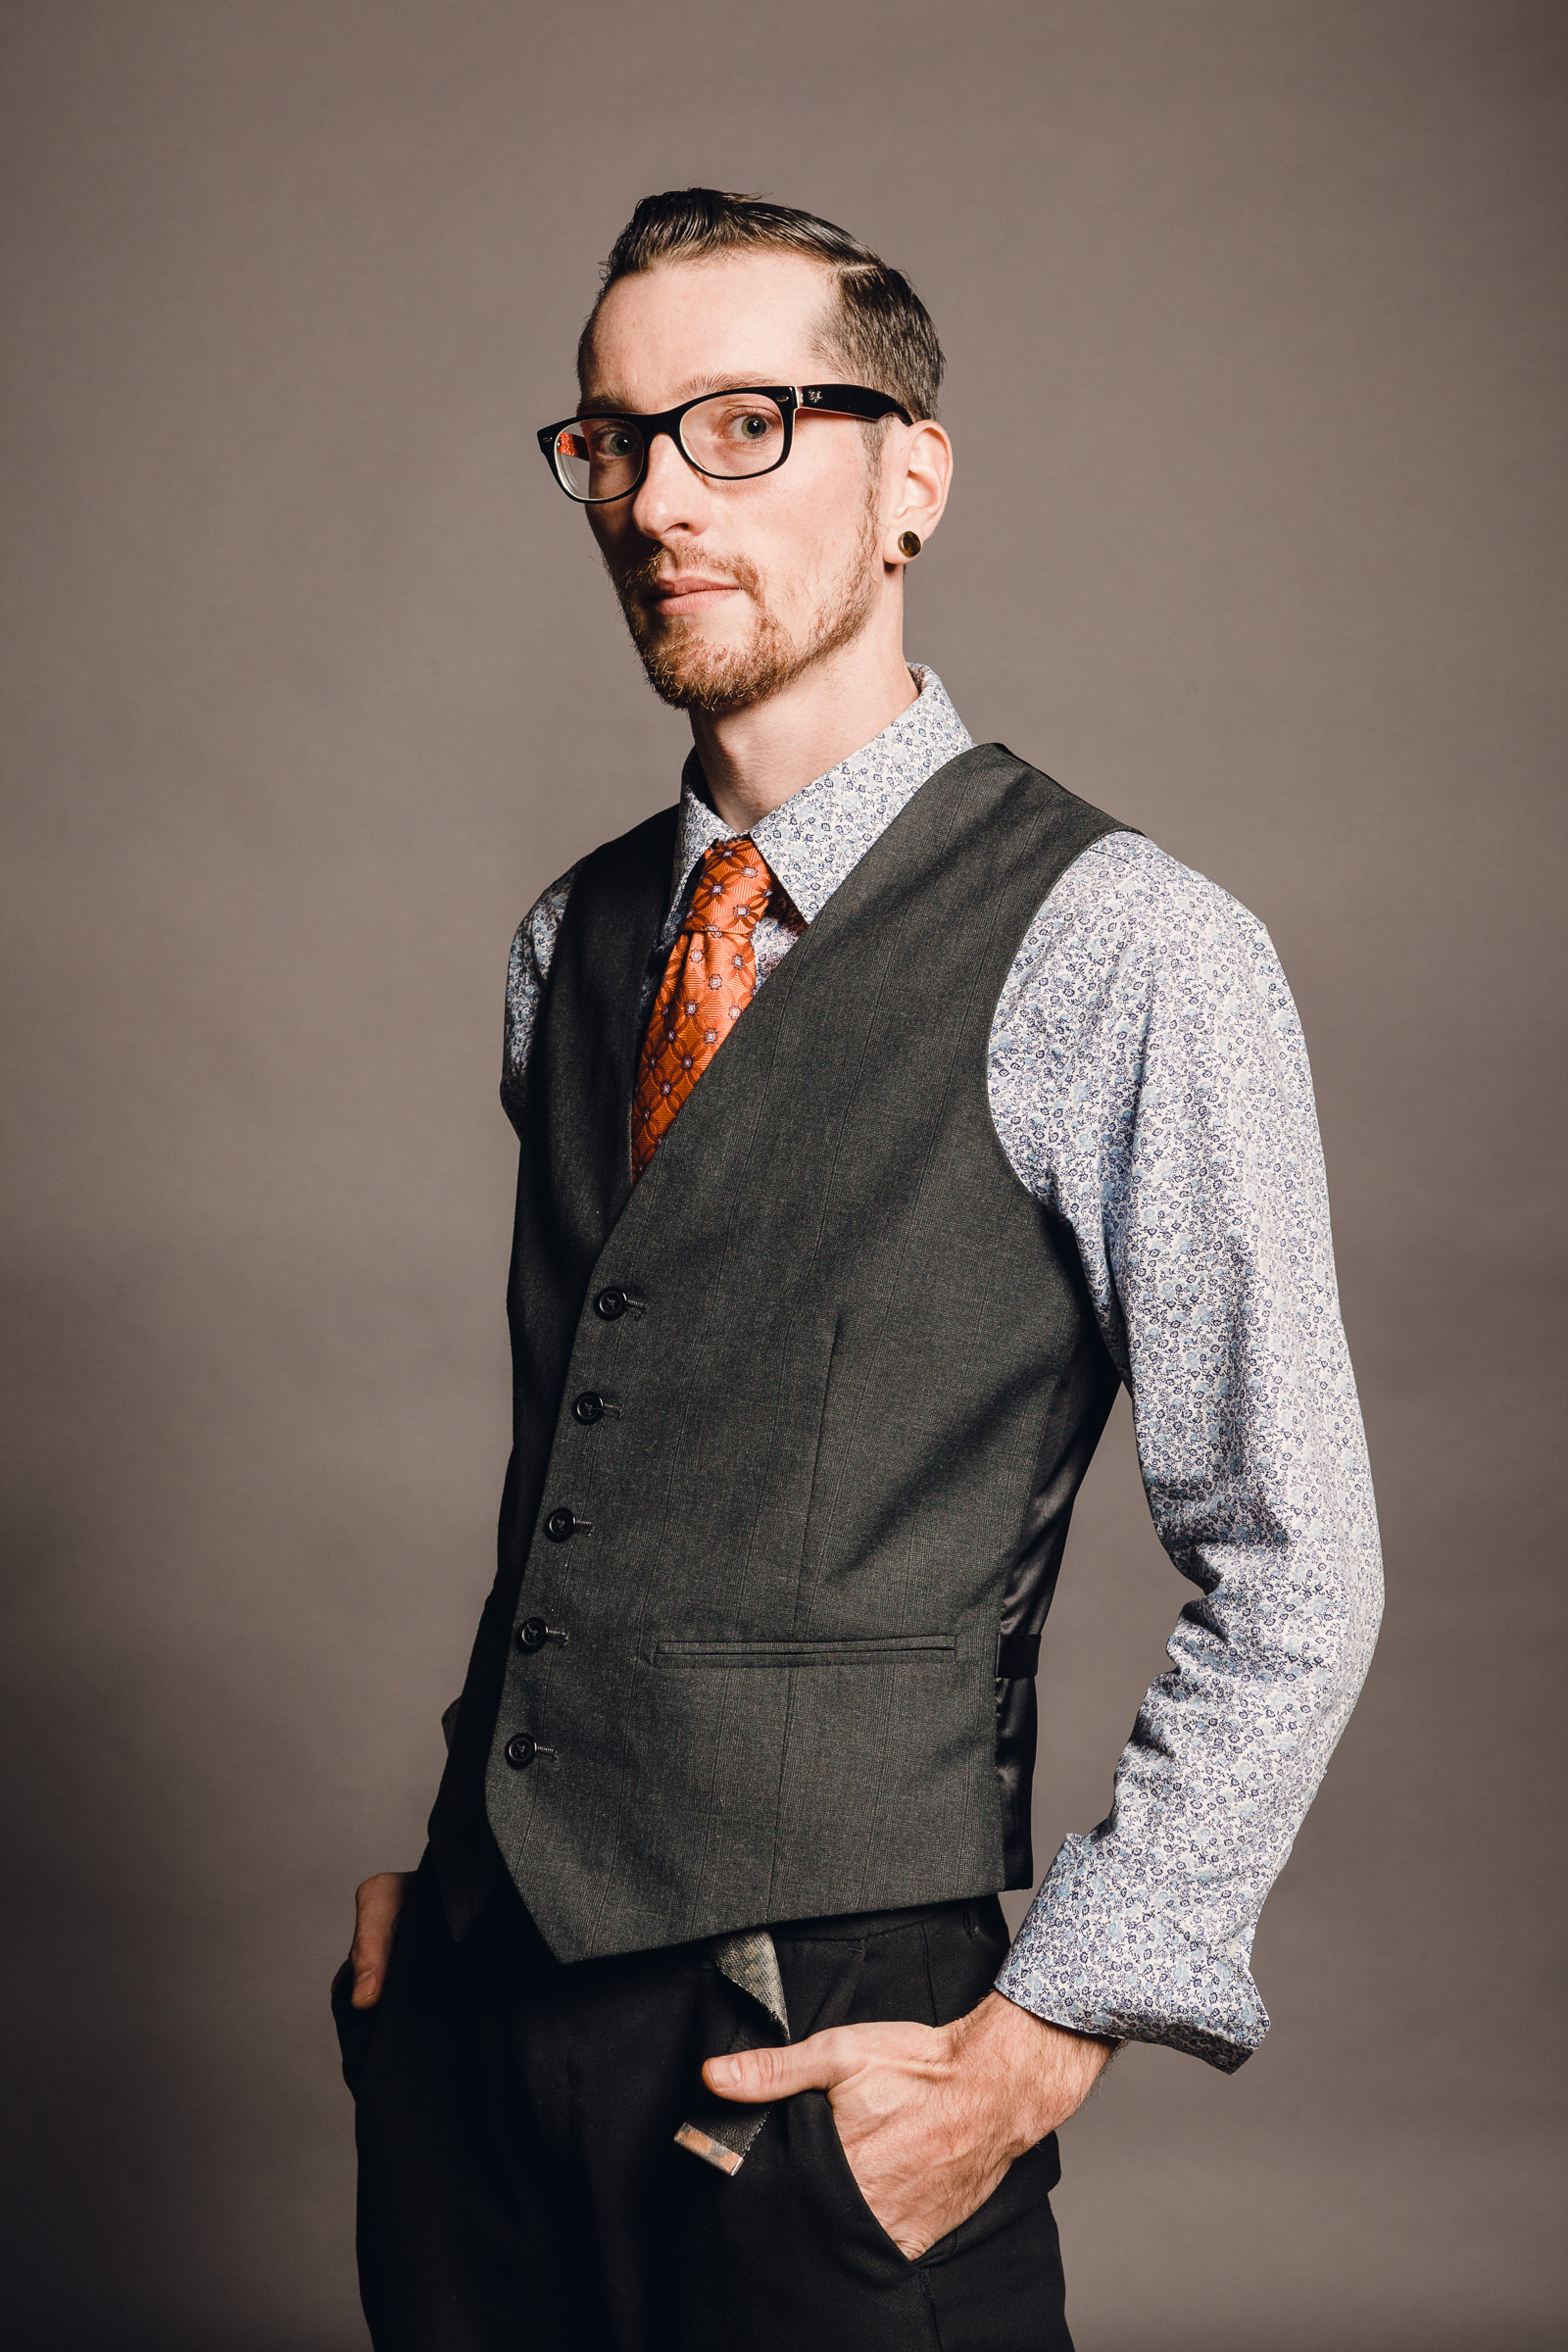 FancyFriday_Sept2013_by_Lomanno-0112.jpg